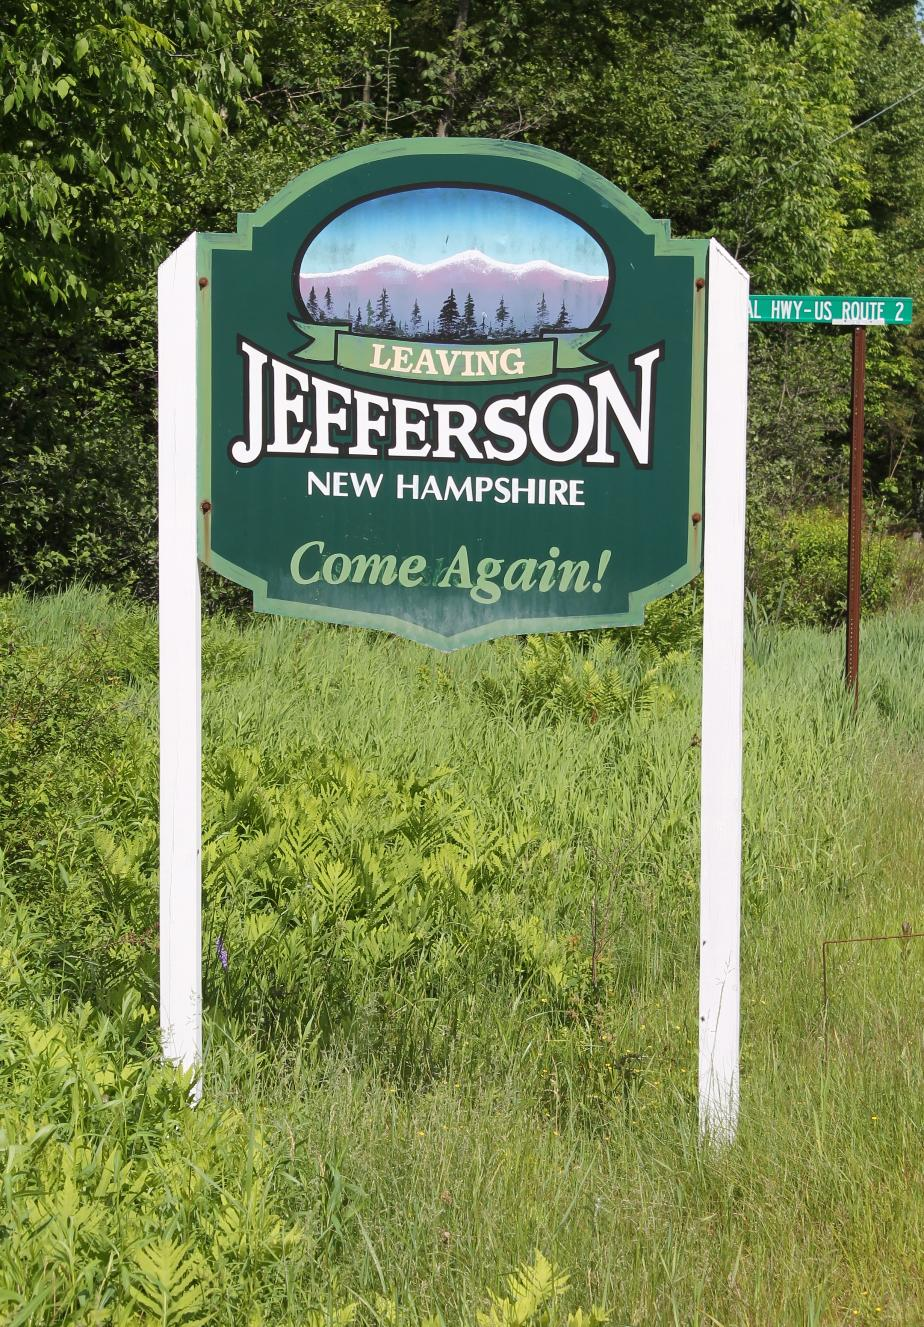 Leaving Jefferson New Hampshire Sign